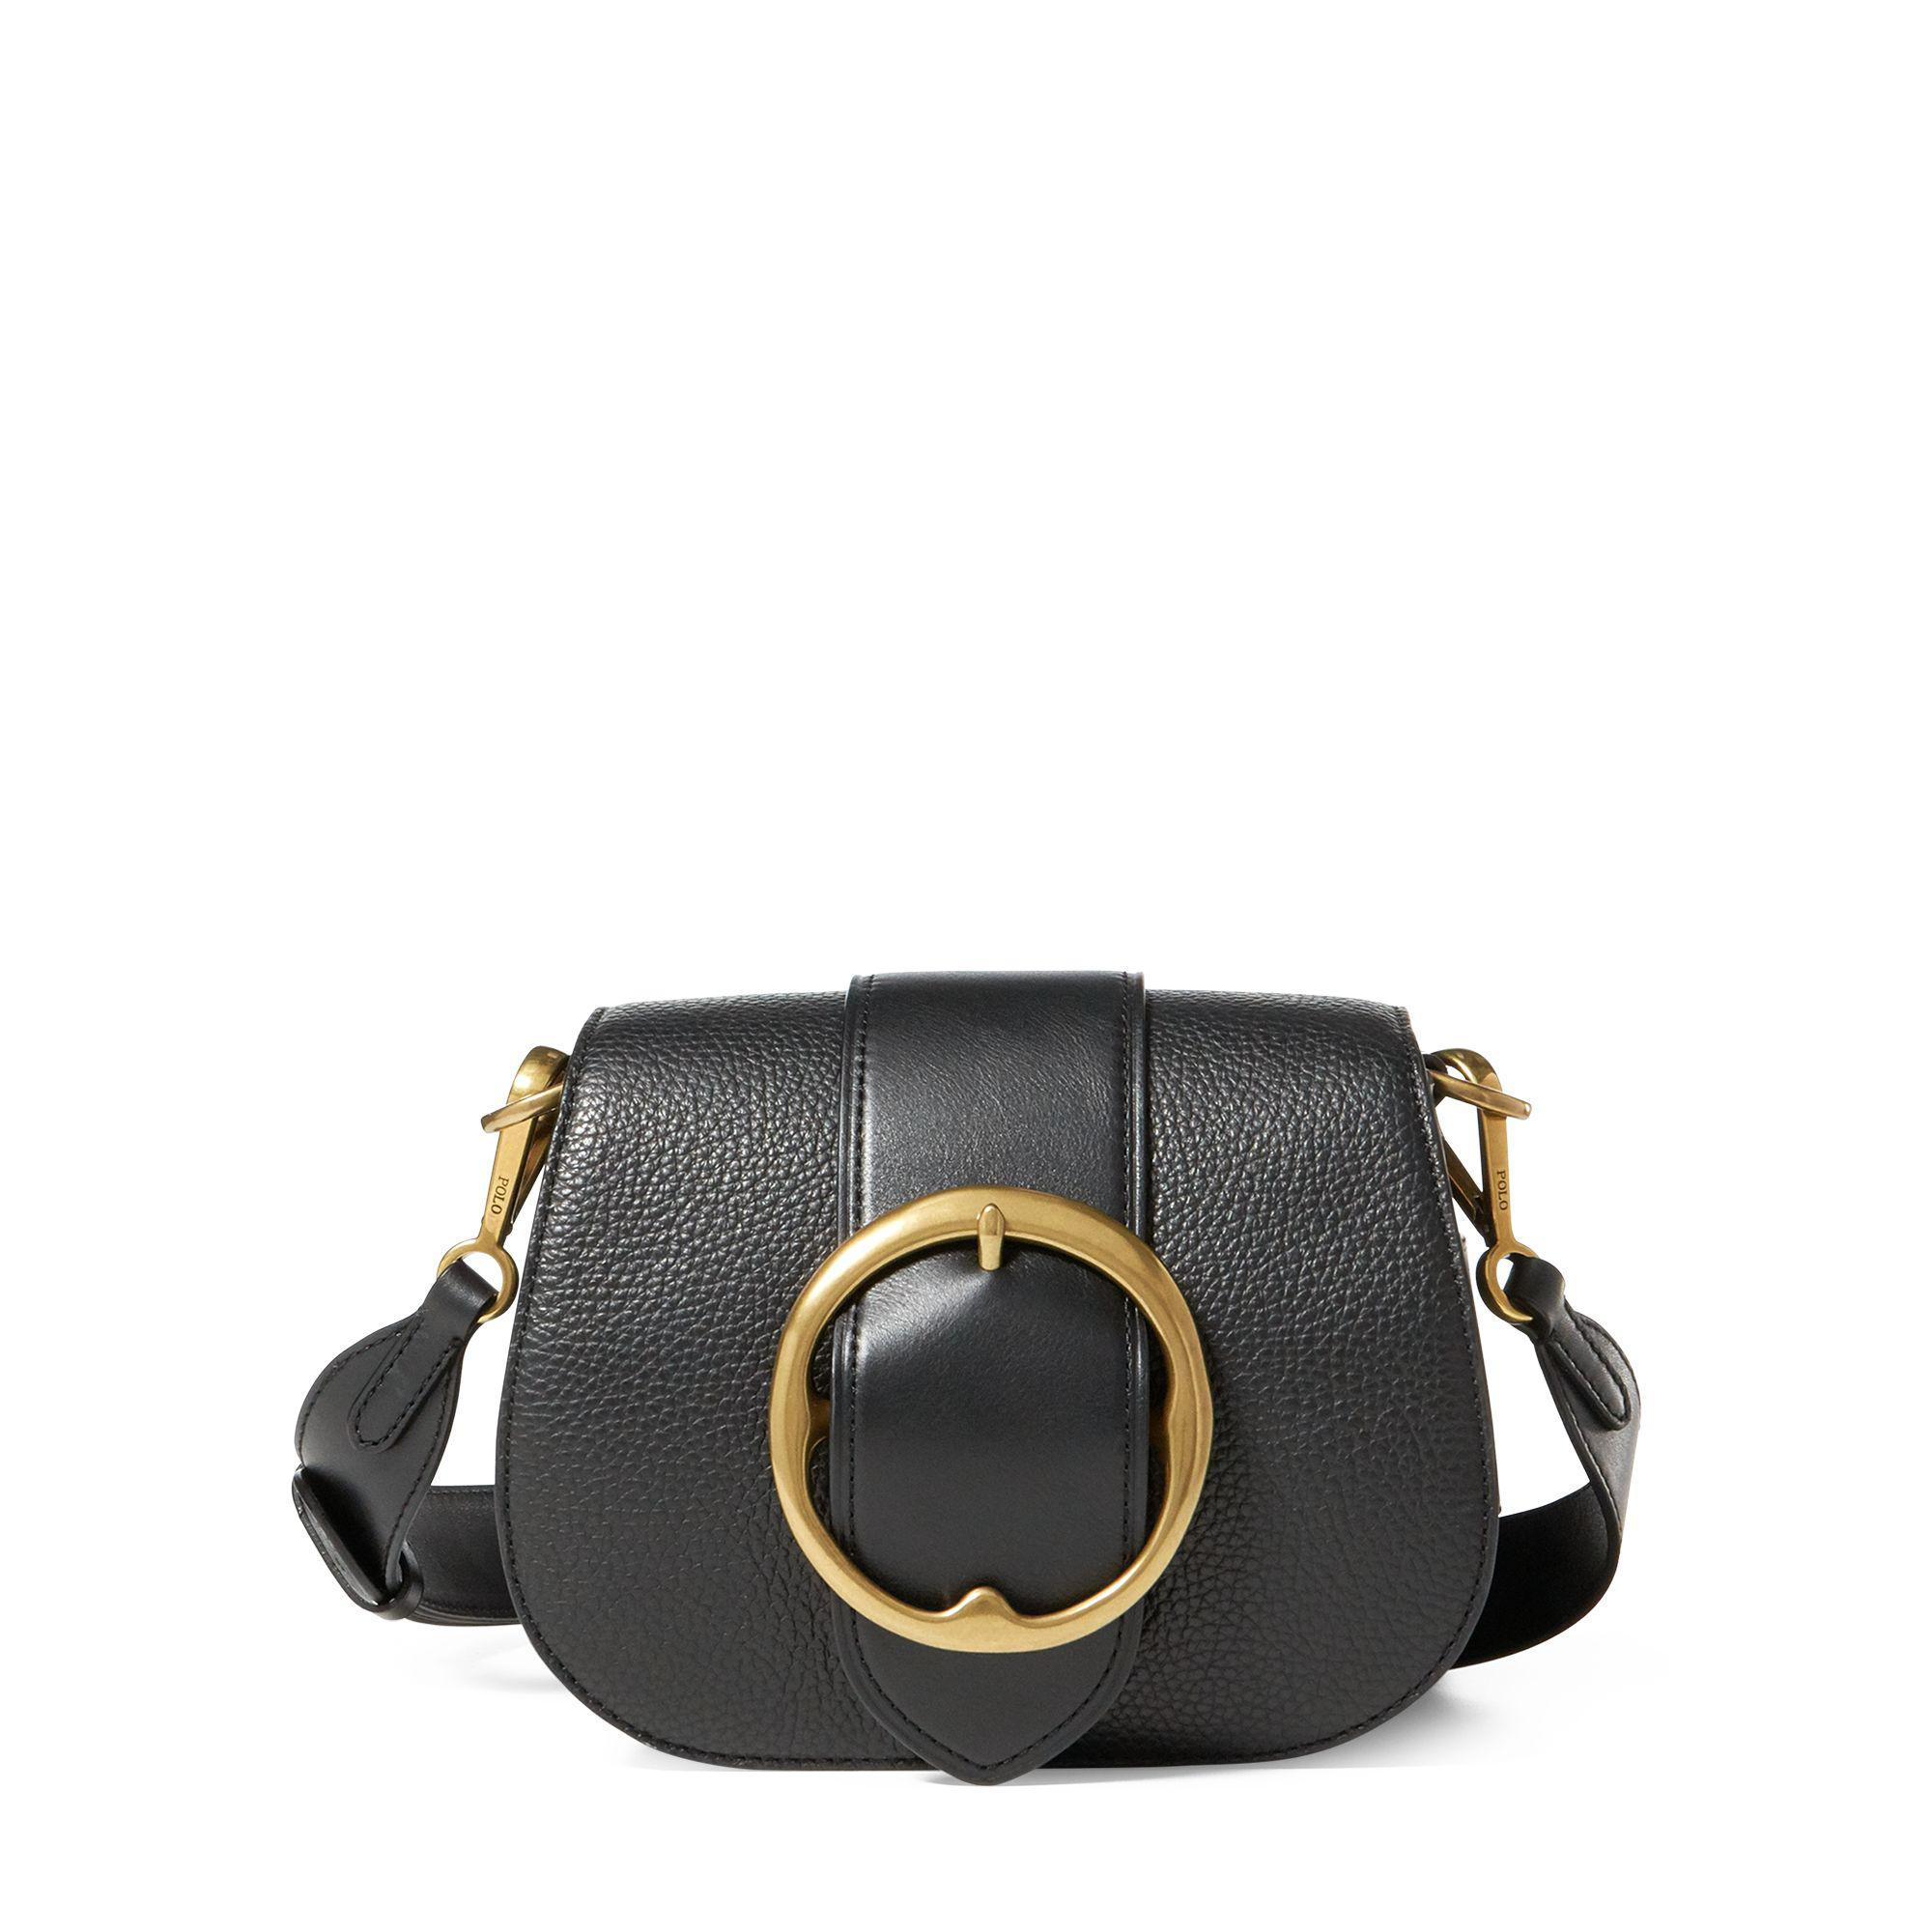 c2fa9d101f Lyst - Polo Ralph Lauren Pebbled Leather Lennox Bag in Black - Save 33%